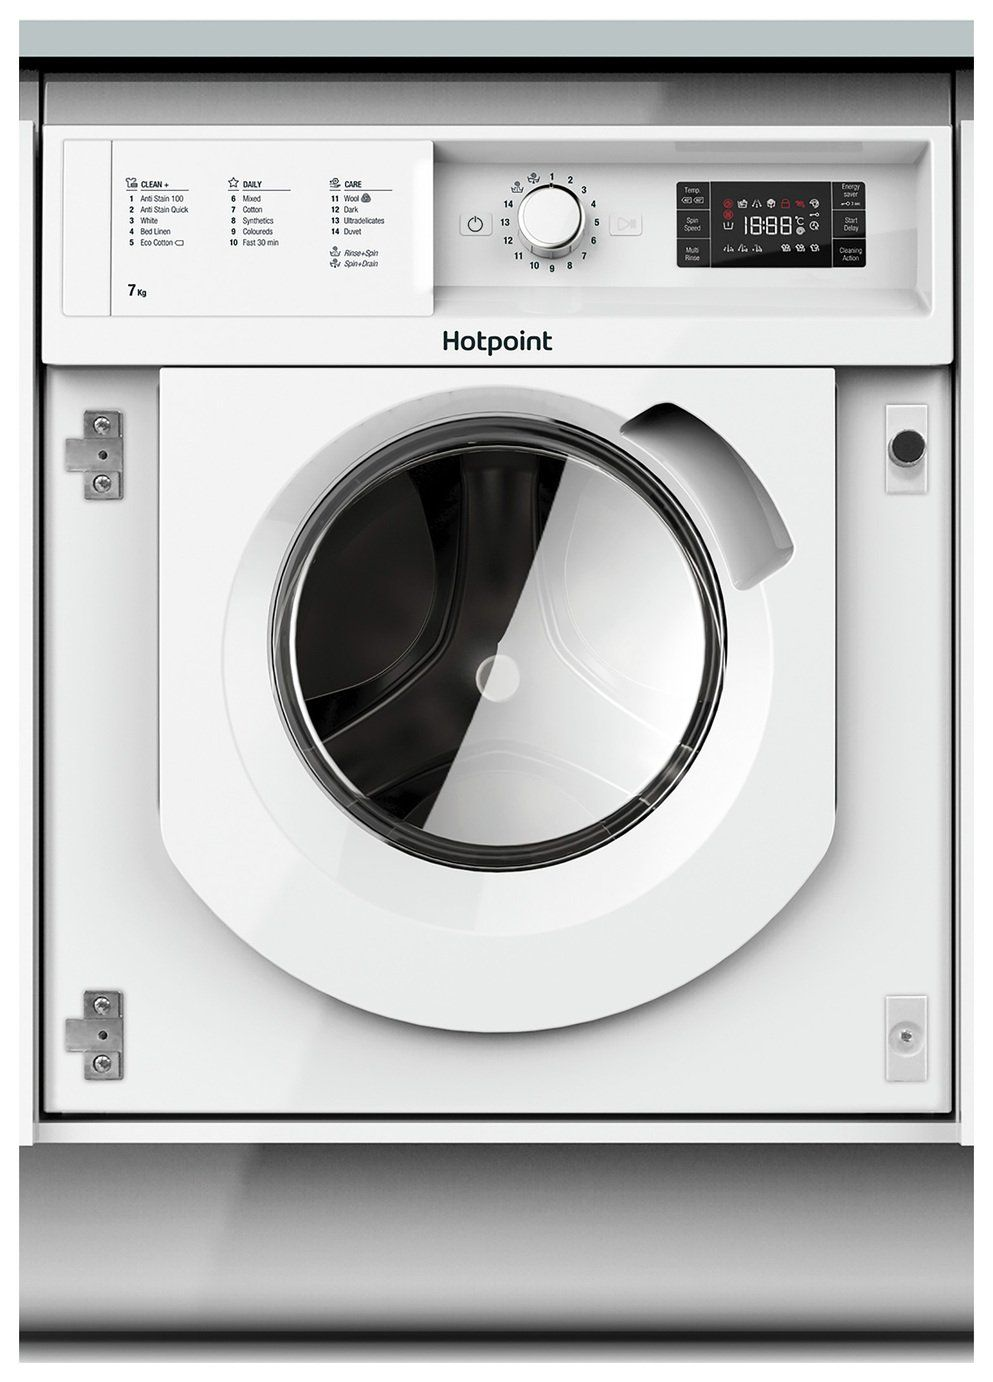 Hotpoint Biwmhg71484 7kg 1400 Spin Washing Machine White In 2020 Integrated Washing Machines Washing Machine White Washing Machines